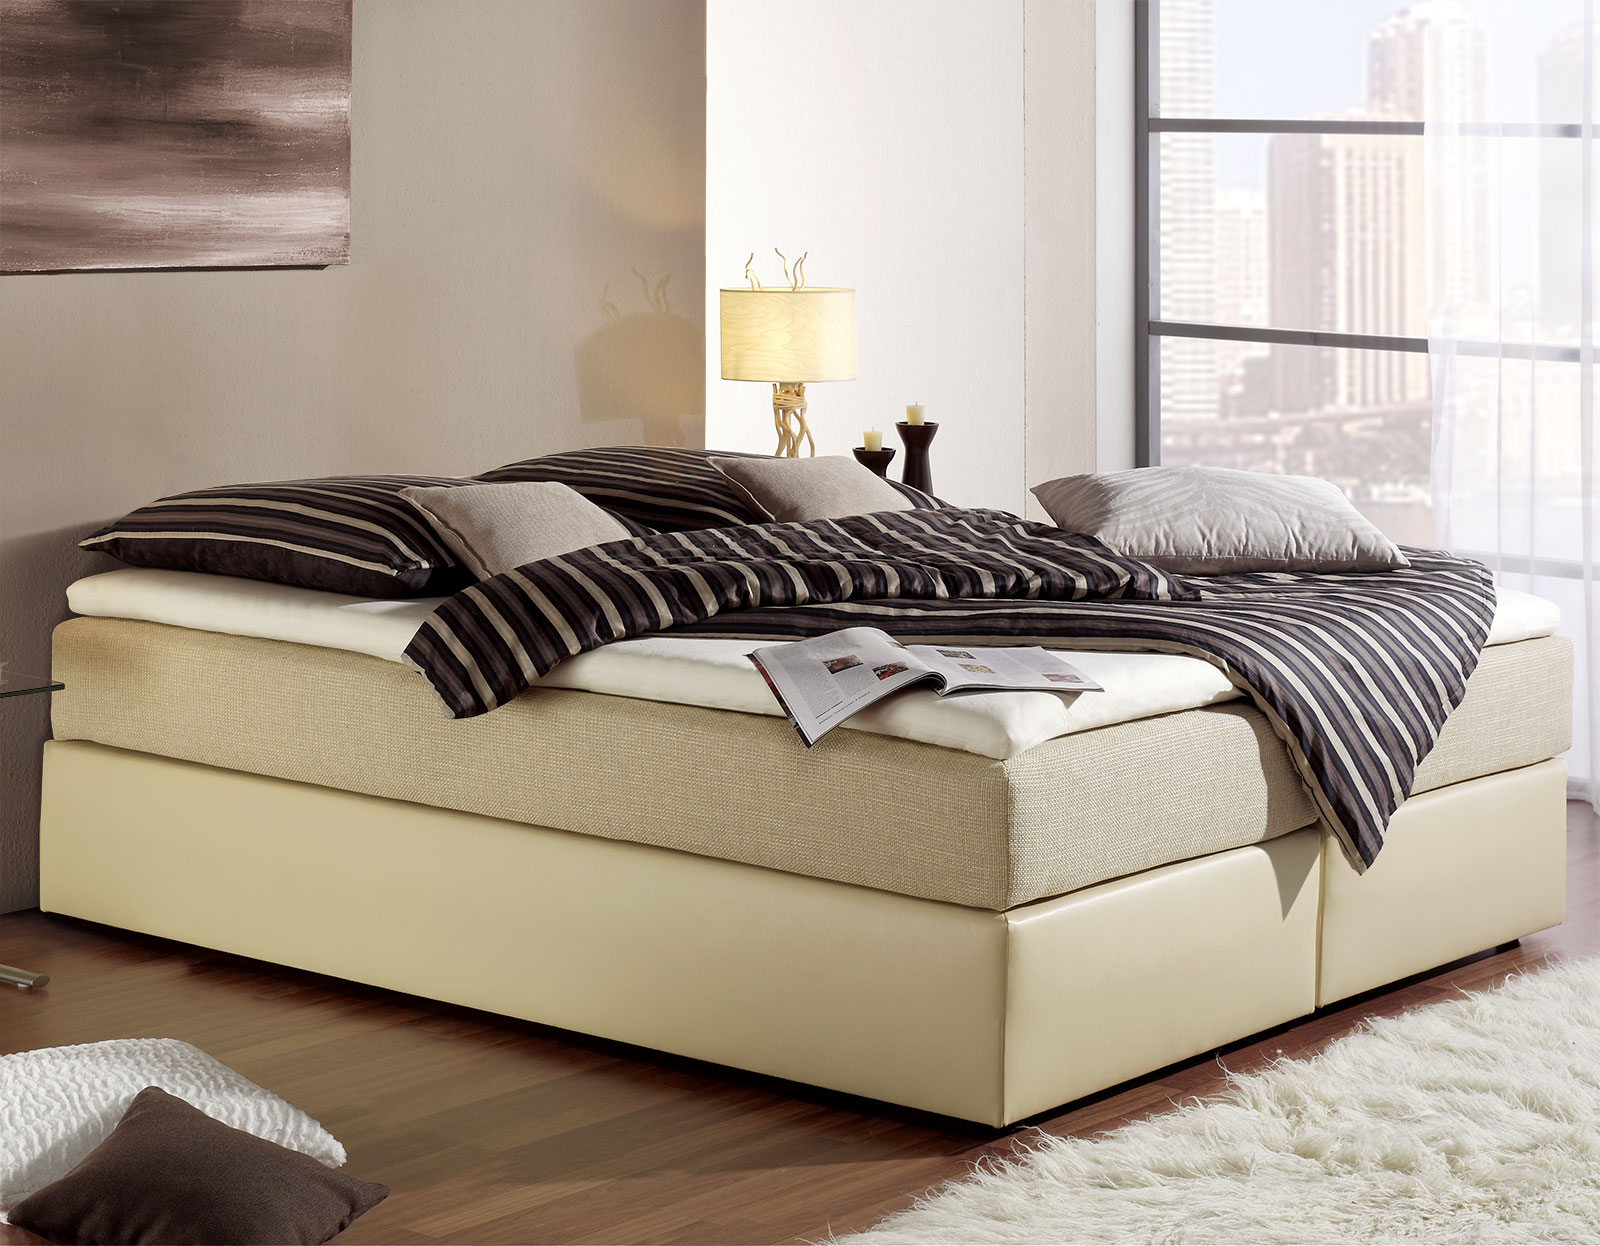 boxspringbett 140x200 cm ohne kopfteil g nstig sydney. Black Bedroom Furniture Sets. Home Design Ideas